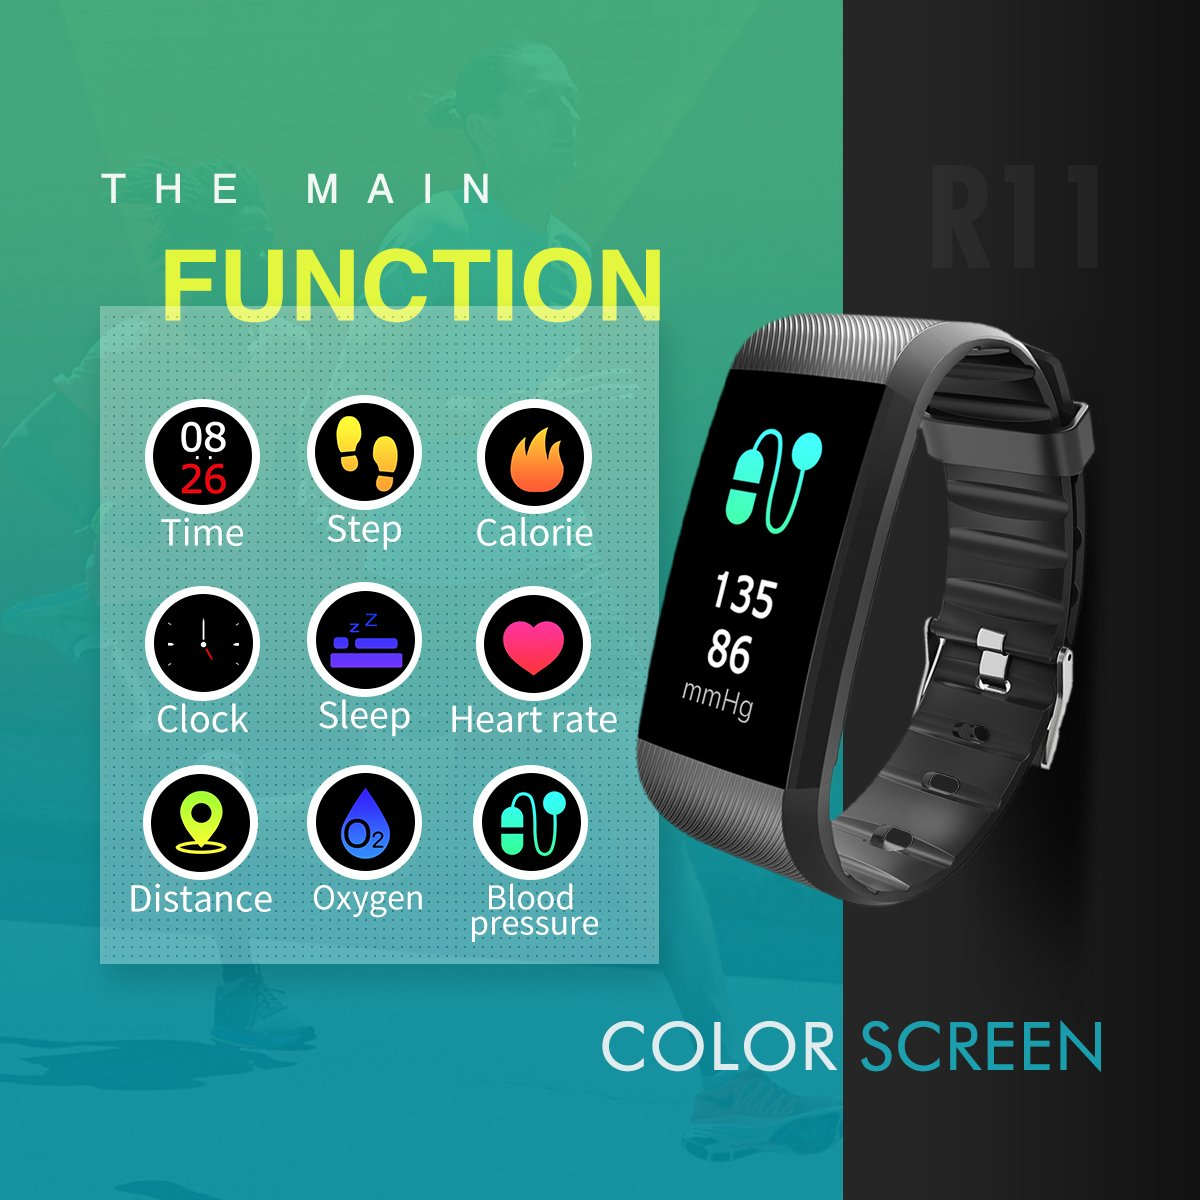 Ltd Activity Fitness Wristband R11 Pedometer for Bluetooth Android and iOS Activity Fitness Wristband R11 Pedometer for Bluetooth Android and iOS New Fitness Tracker Heart Rate Monitor R11-Purple IP67 Waterproof Smart Bracelet with Camera Remote Shoot